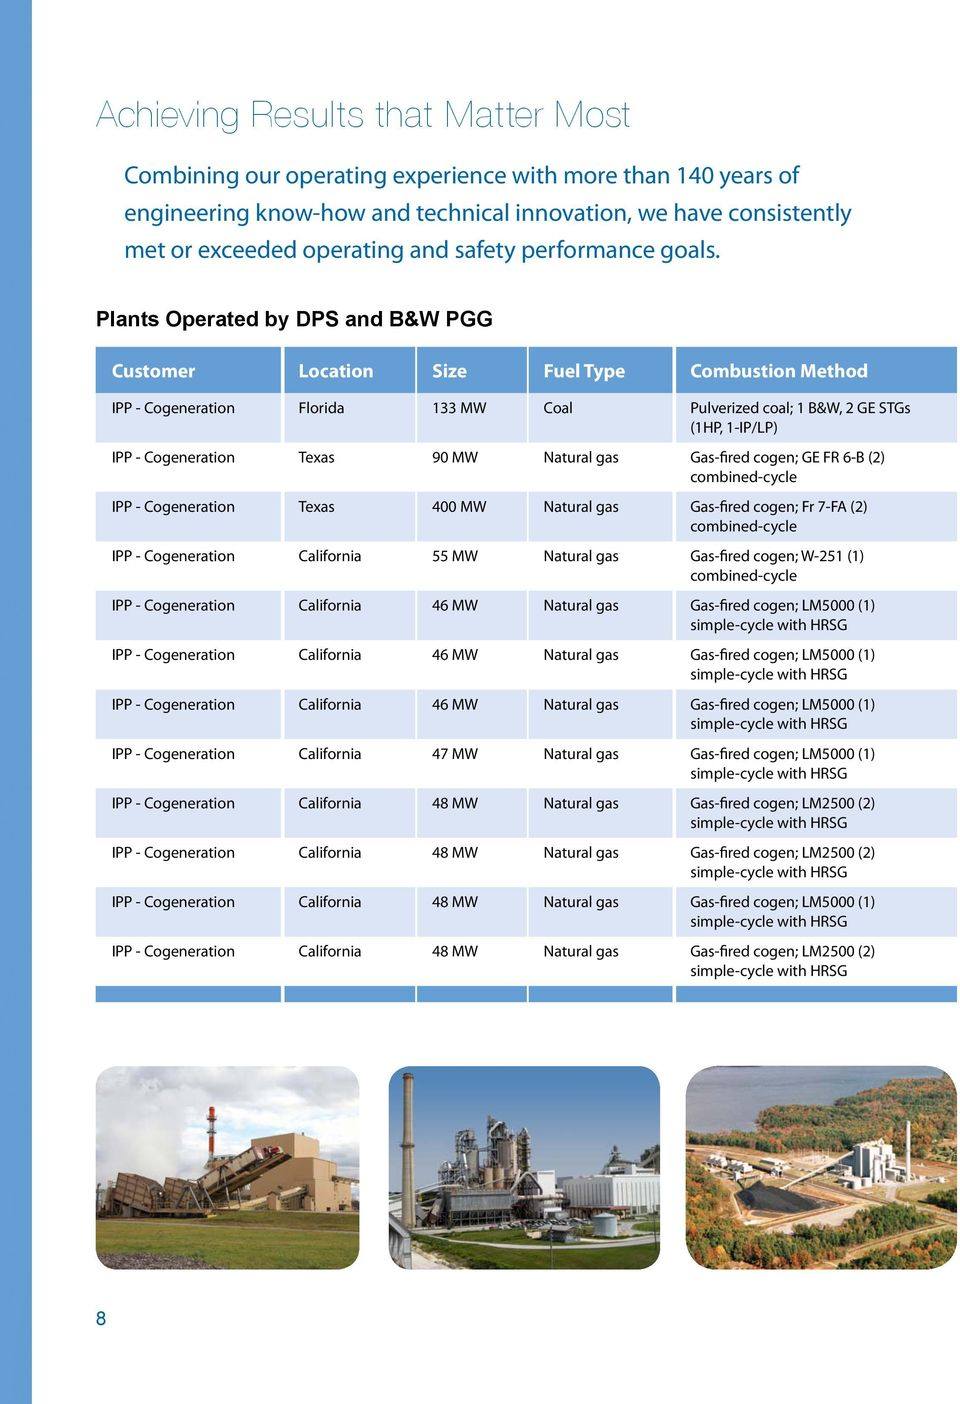 Plants Operated by DPS and B&W PGG Customer Location Size Fuel Type Combustion Method IPP - Cogeneration Florida 133 MW Coal Pulverized coal; 1 B&W, 2 GE STGs (1HP, 1-IP/LP) IPP - Cogeneration Texas